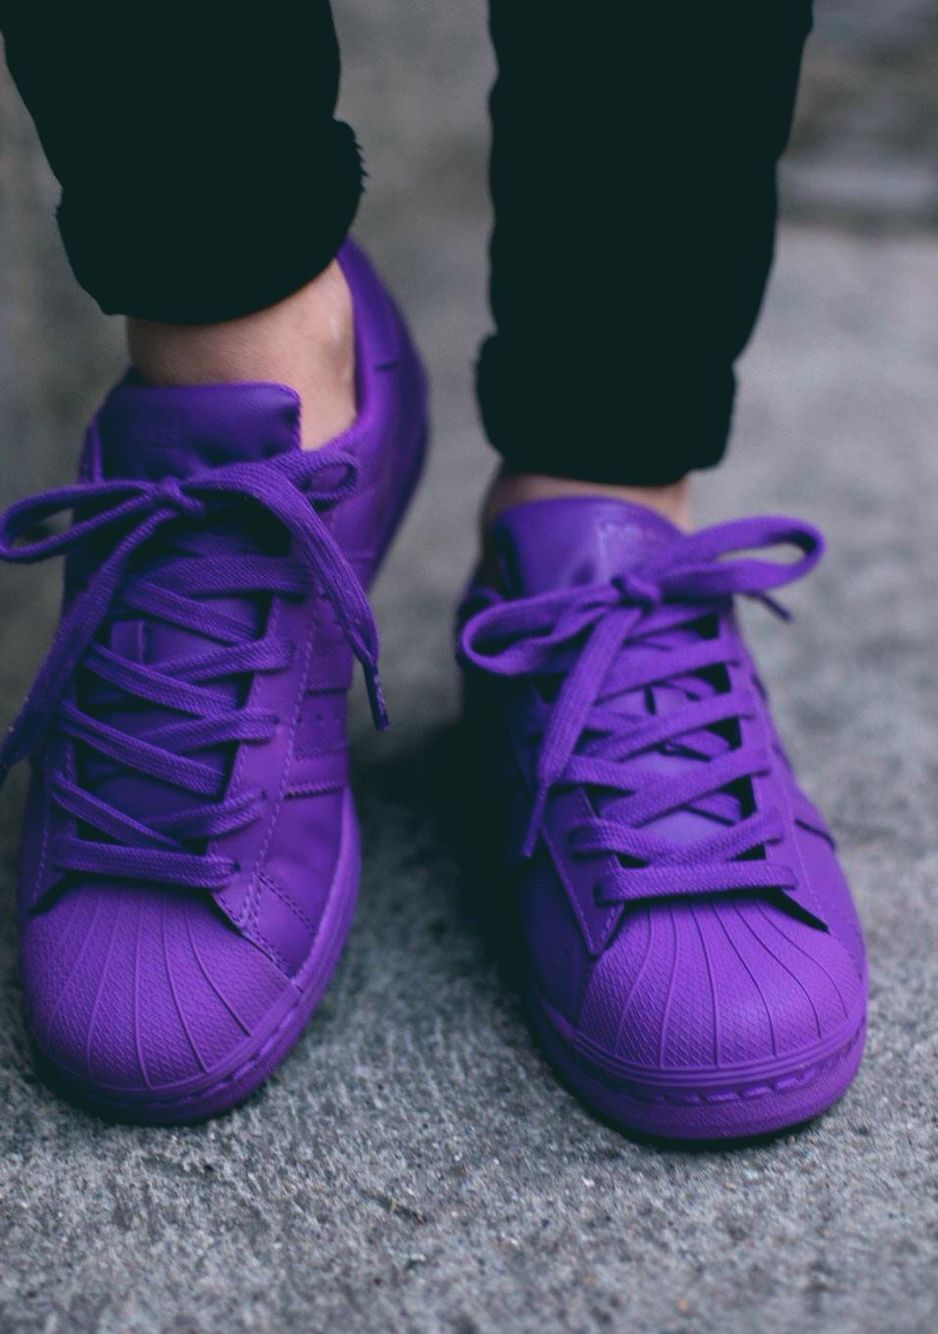 ce490099e4dc Pharrell Williams x adidas Originals Superstars  Purple